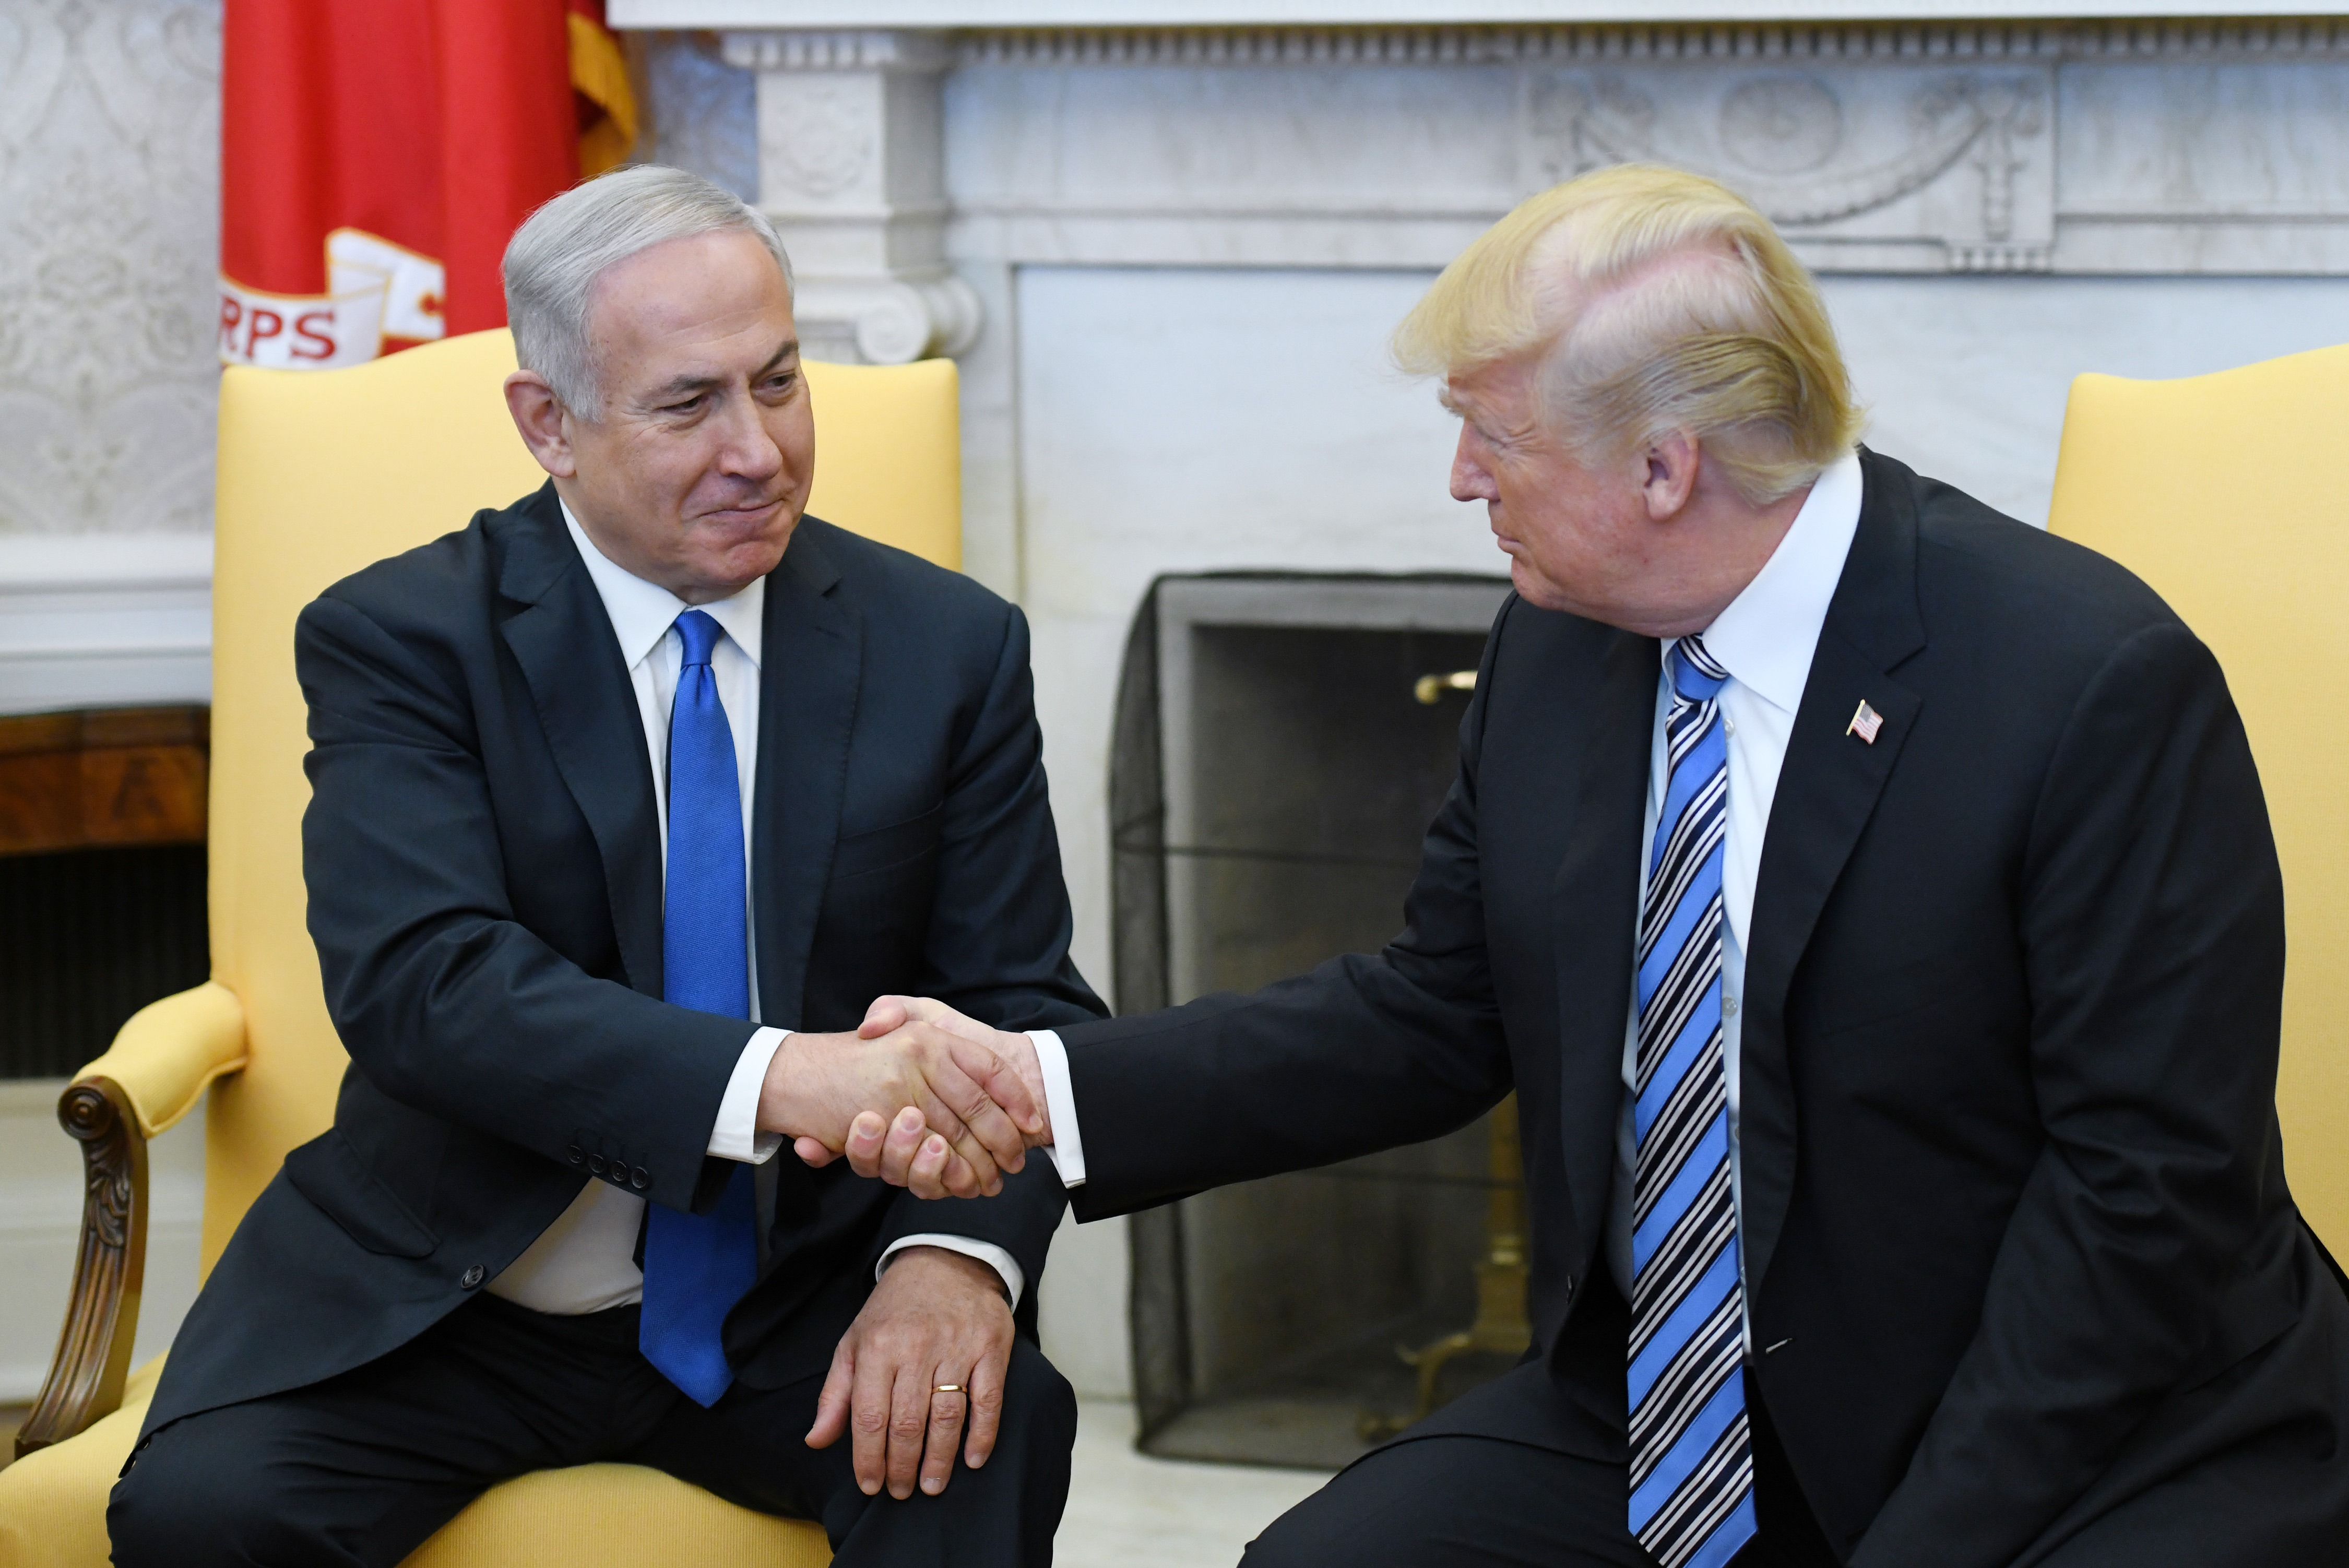 (AFP OUT) U.S. President Donald Trump (R) shakes hands with Israel Prime Minister Benjamin Netanyahu as they meet in the Oval Office of the White House March 5, 2018 in Washington, DC. The prime minister is on an official visit to the US until the end of the week. (Getty Images)